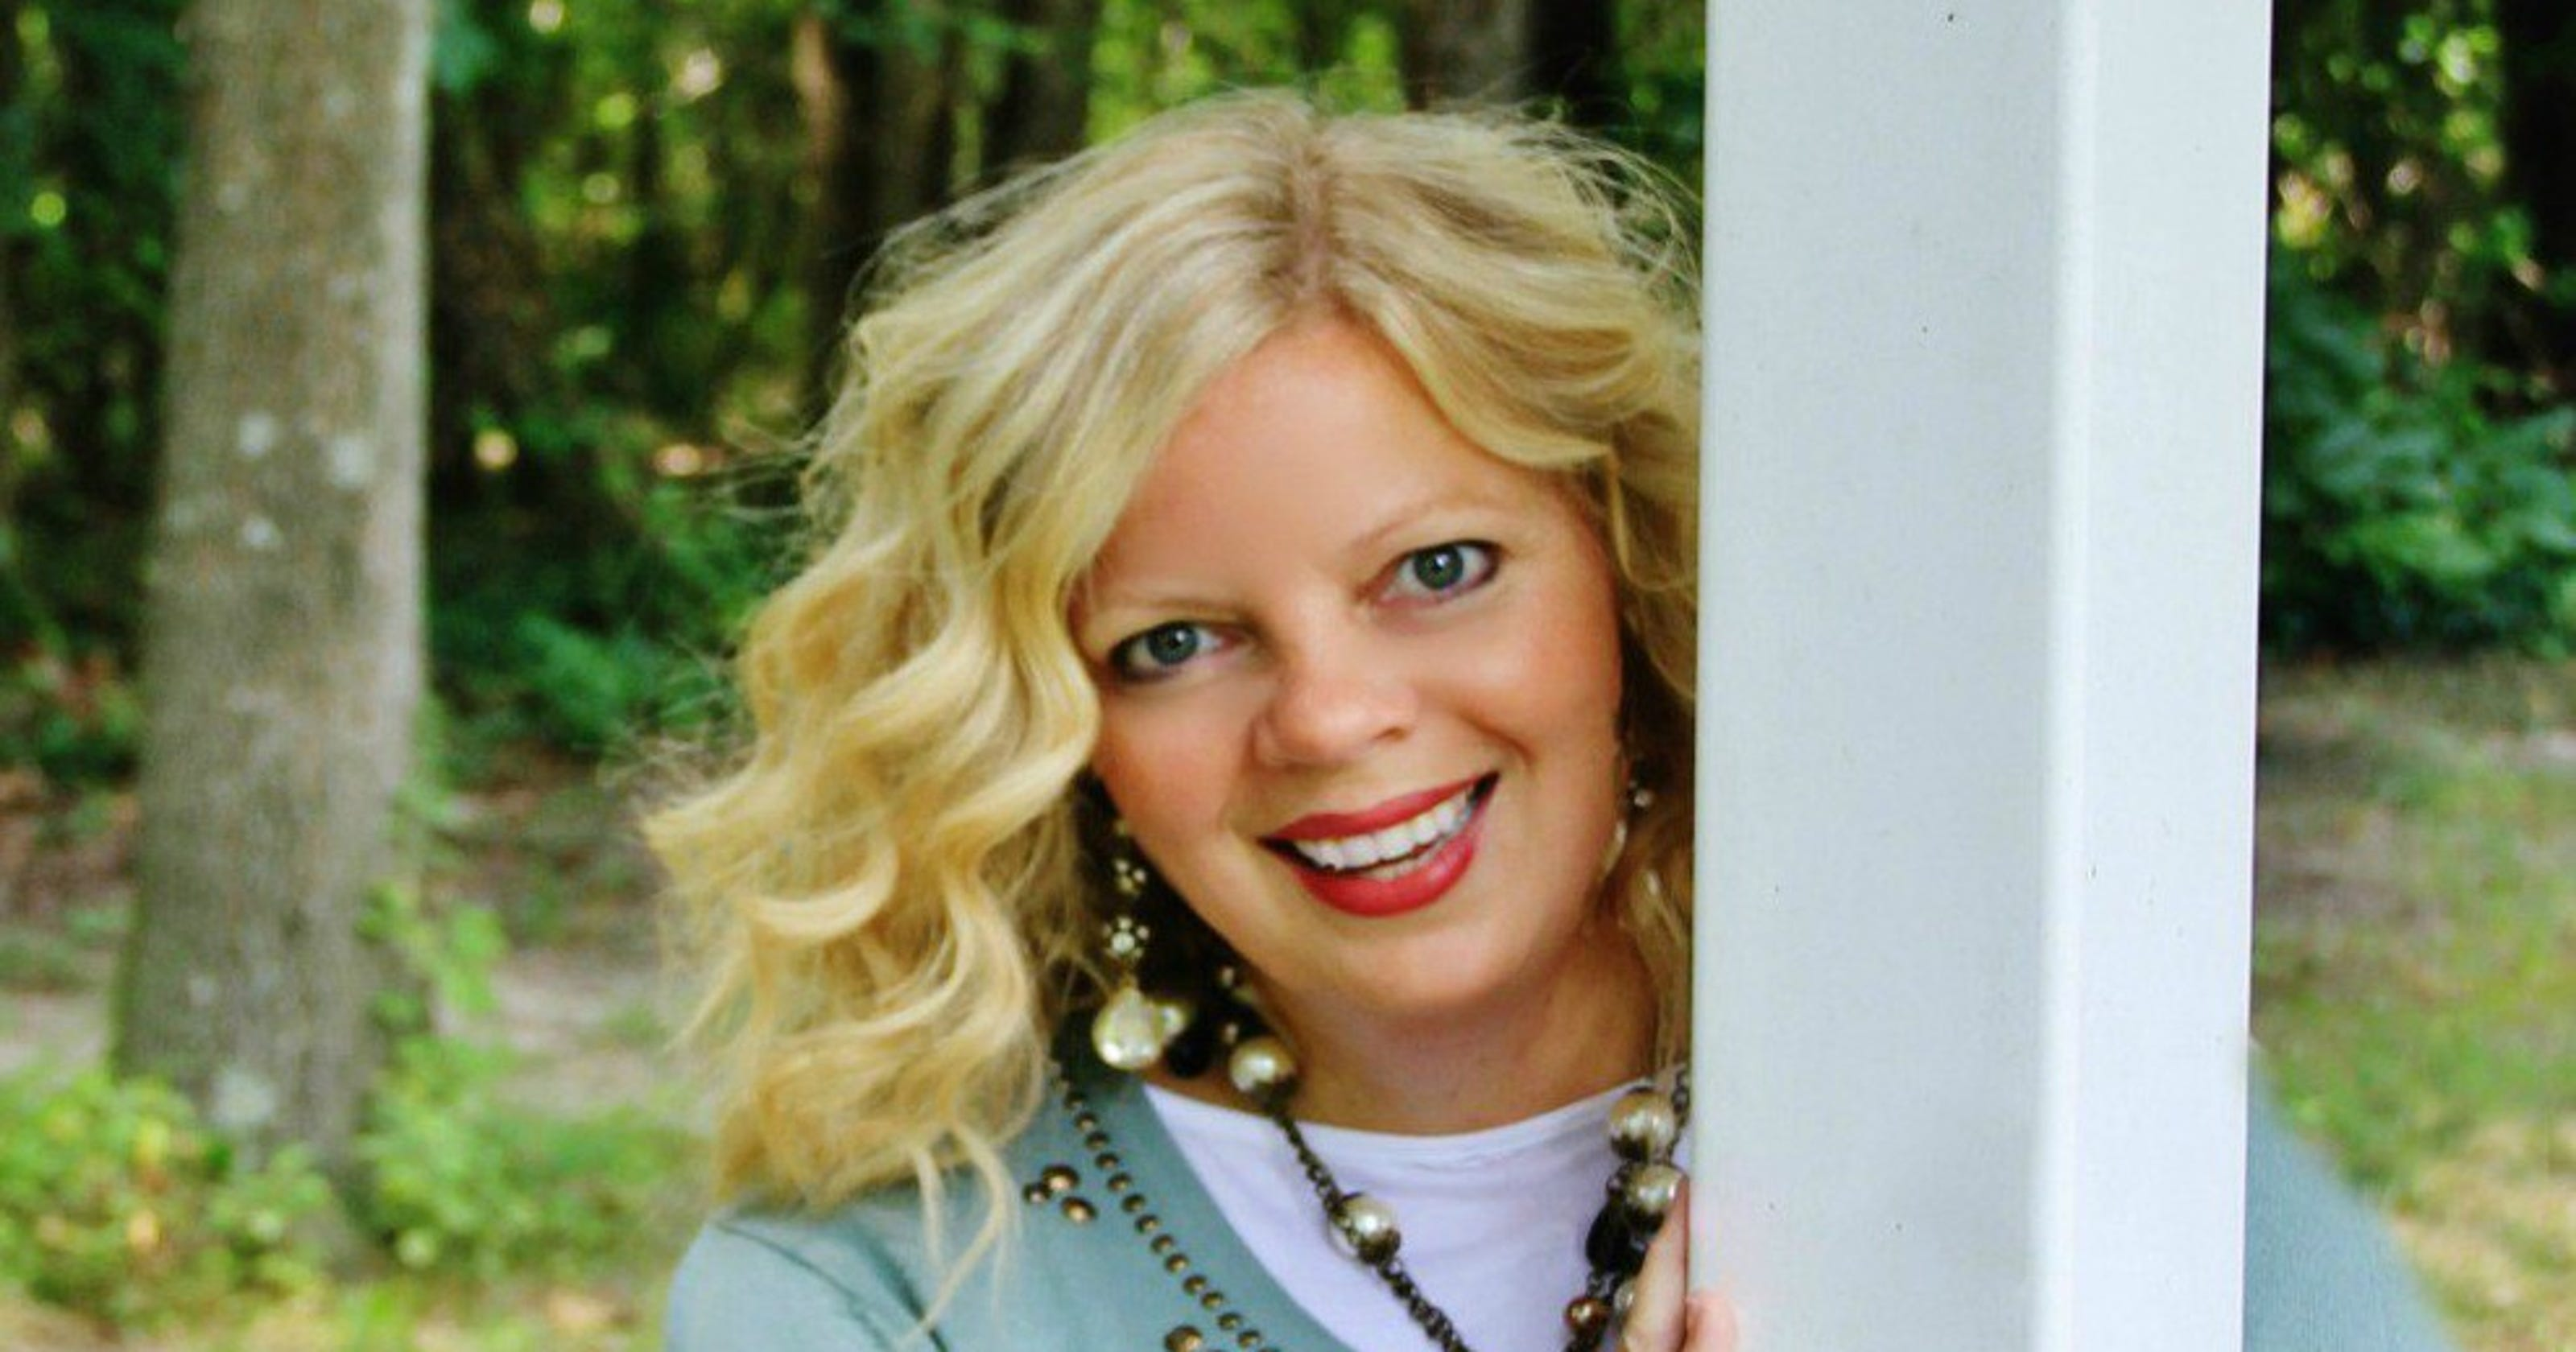 Home Decor Blogger KariAnne Wood Celebrates Imperfection With New Book